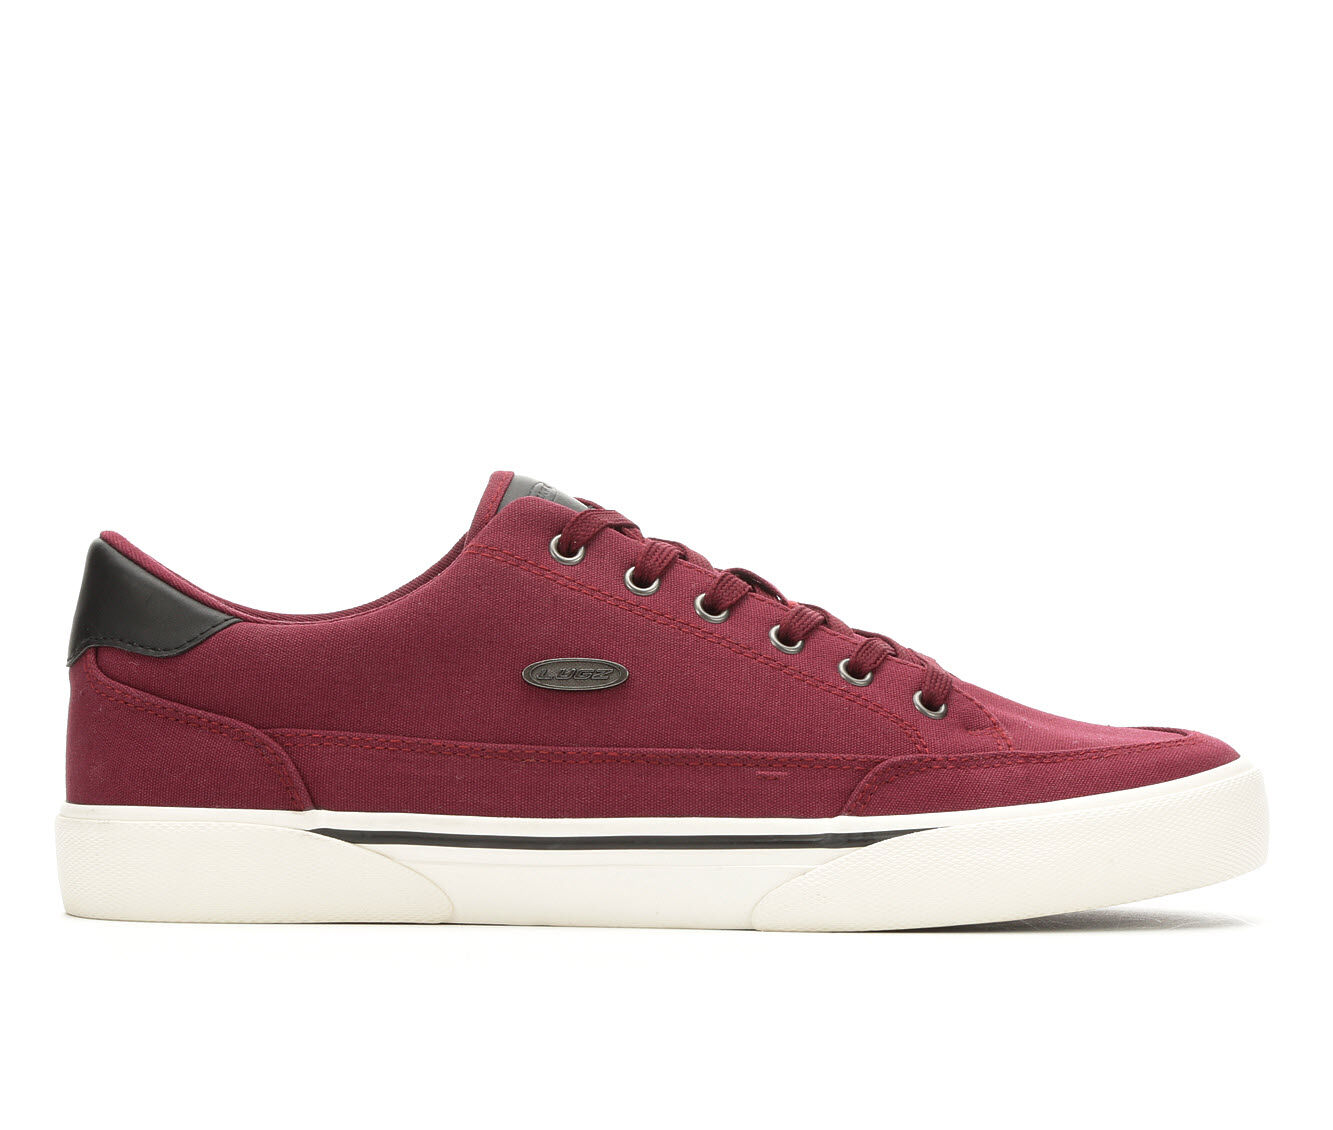 Men's Lugz Stockwell Casual Sneakers Berry